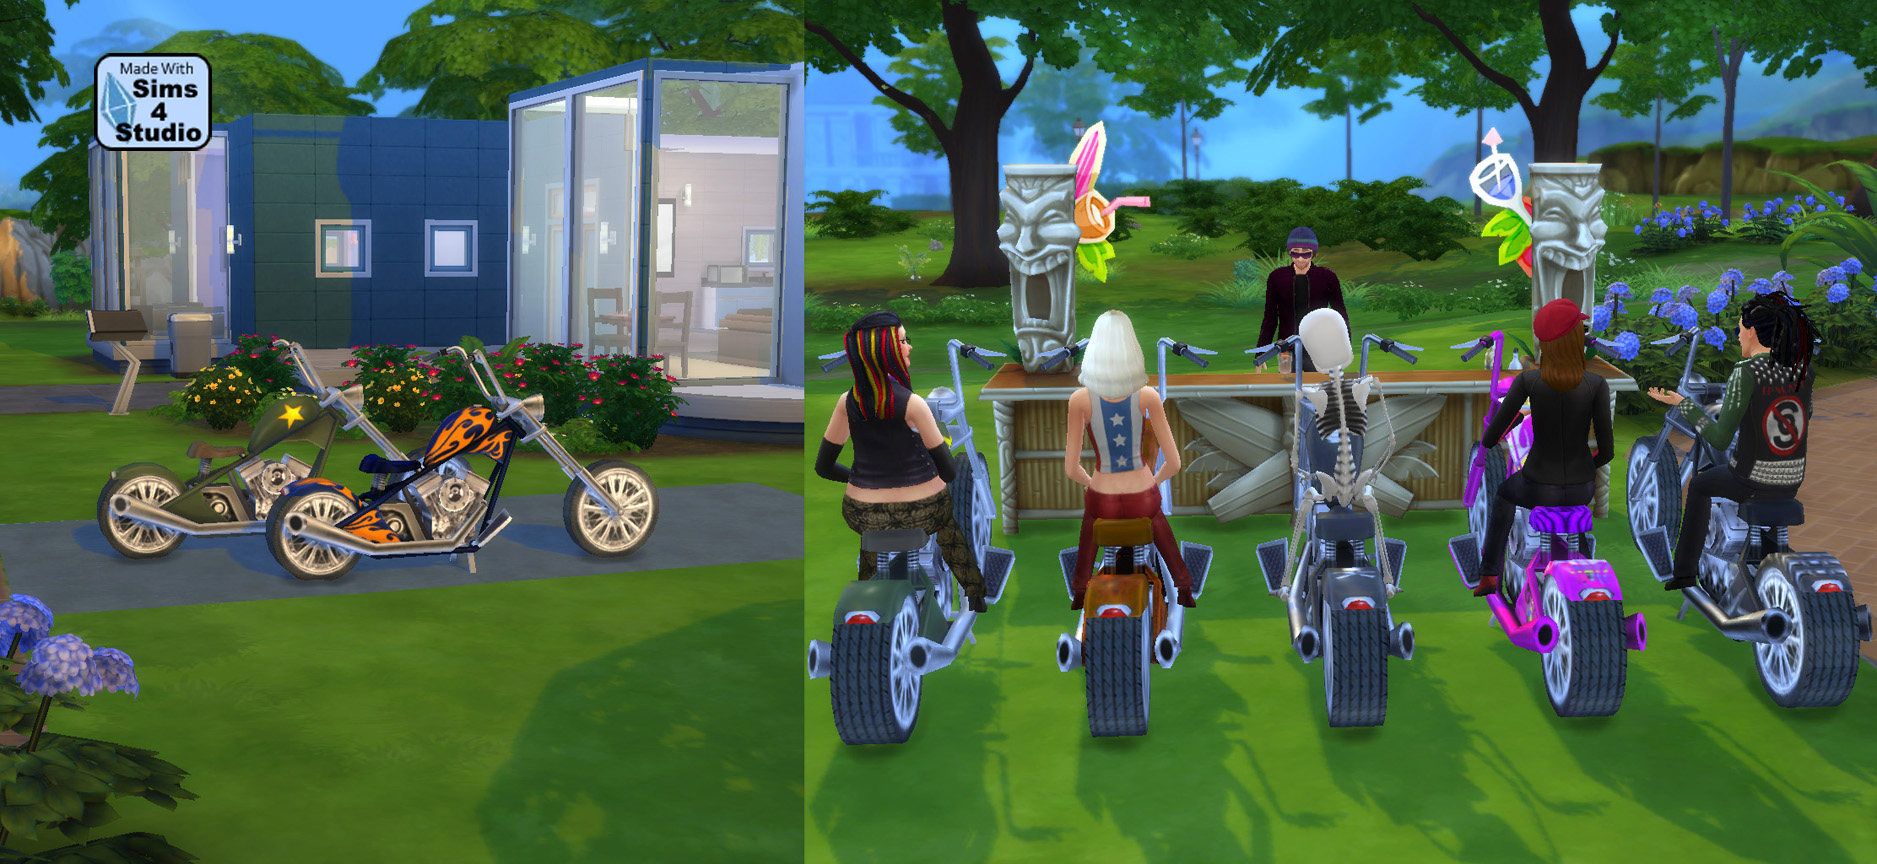 Outstanding Mod The Sims Sittable Motorcycle Ts3 Conversion Caraccident5 Cool Chair Designs And Ideas Caraccident5Info